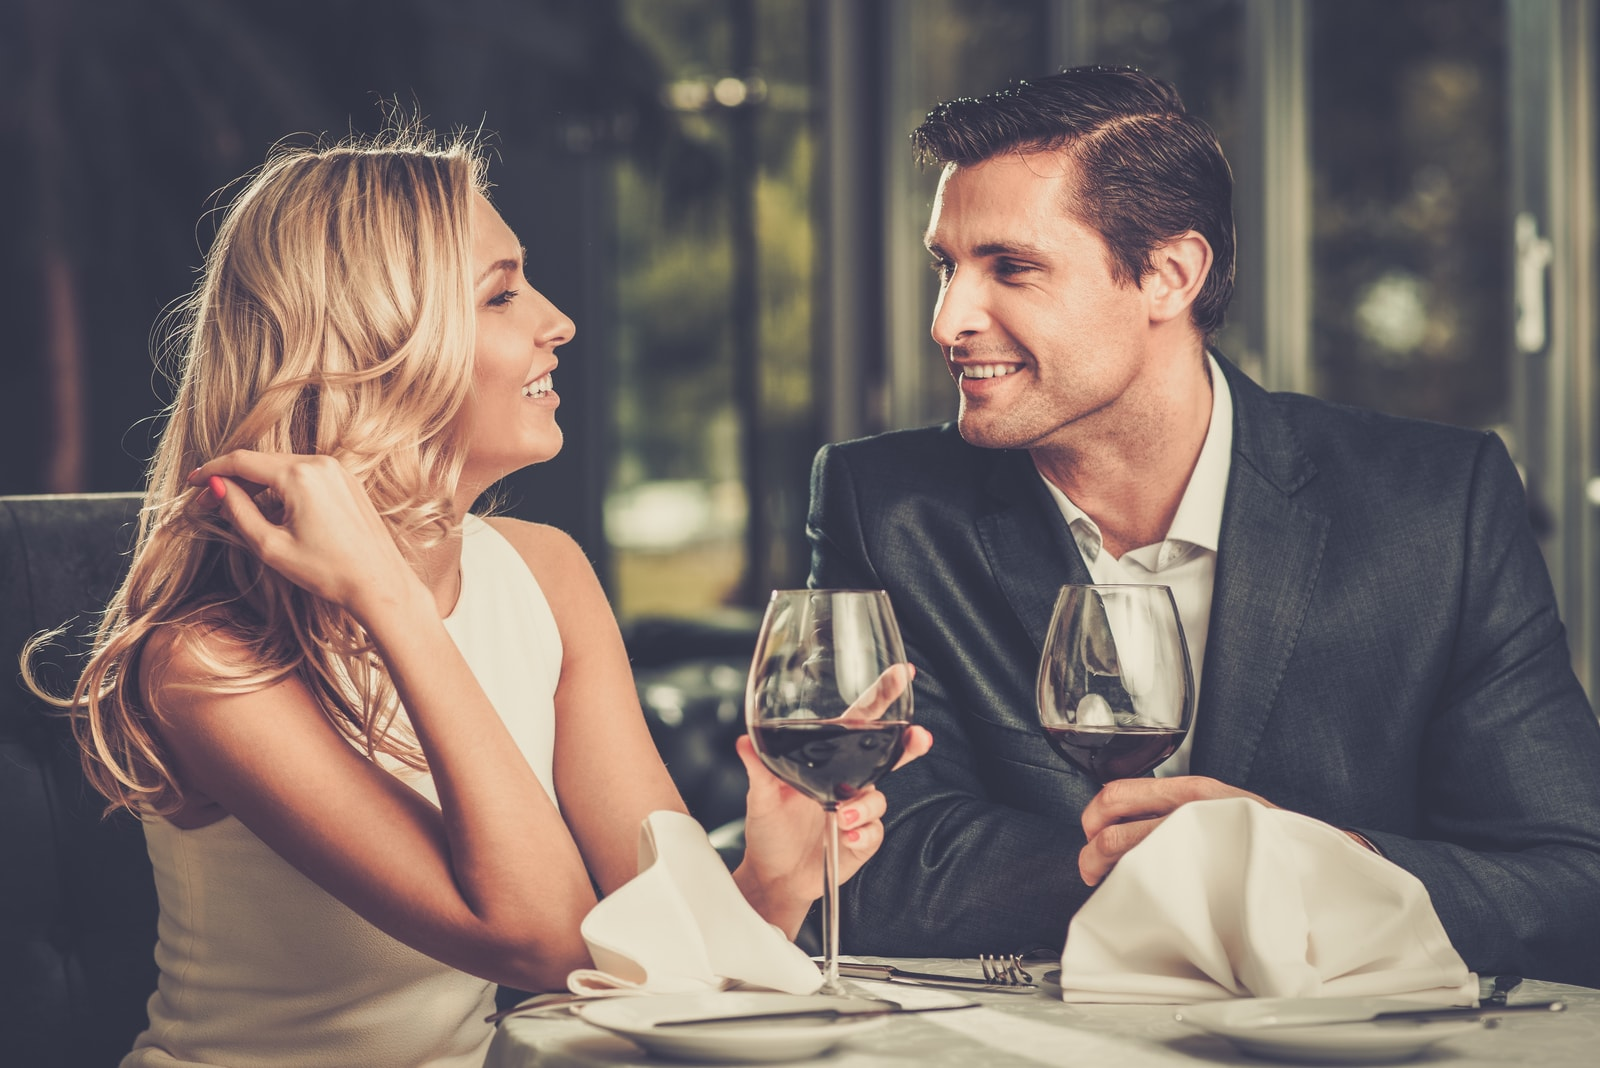 a man and a woman sit drinking wine and talking